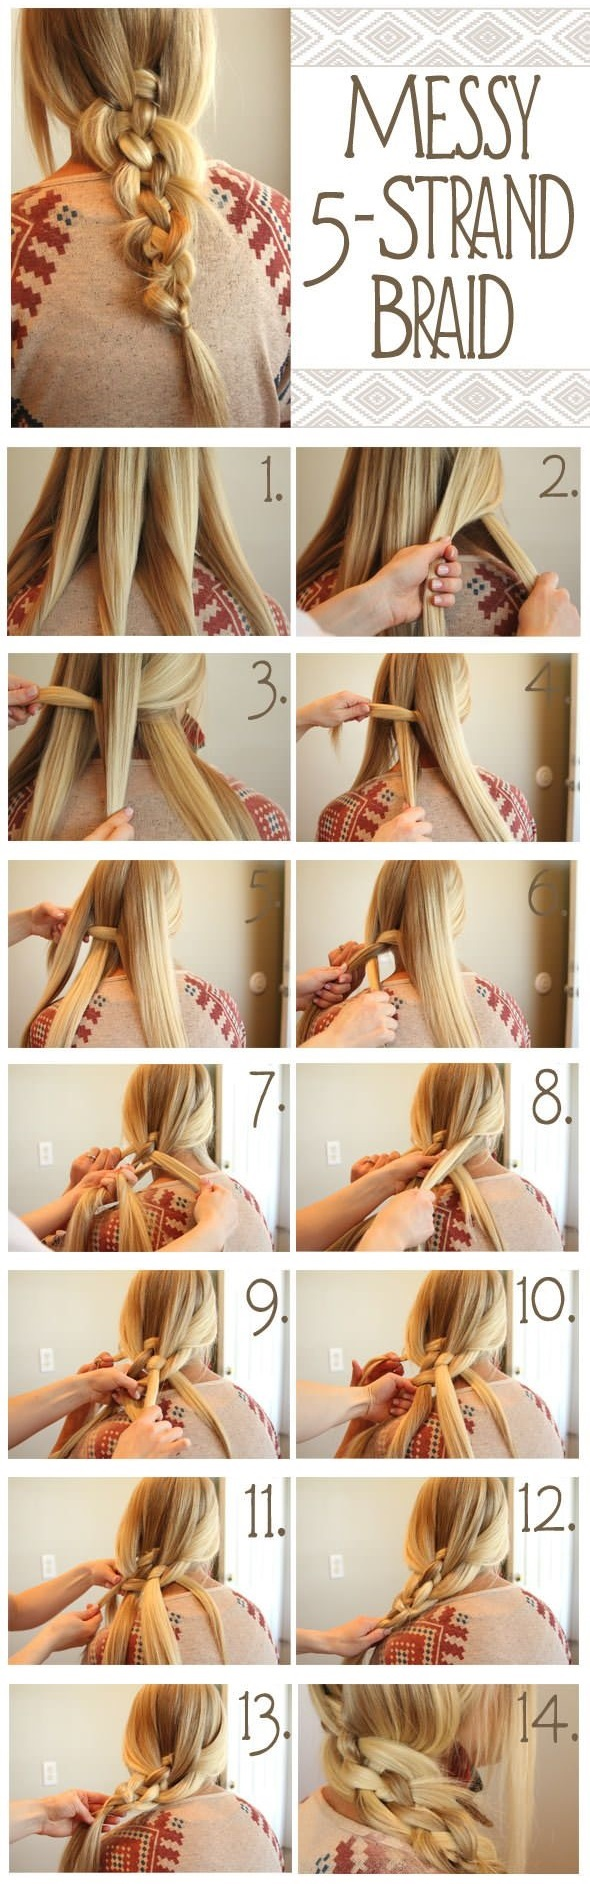 How To Make a 5 Strand Messy Braid